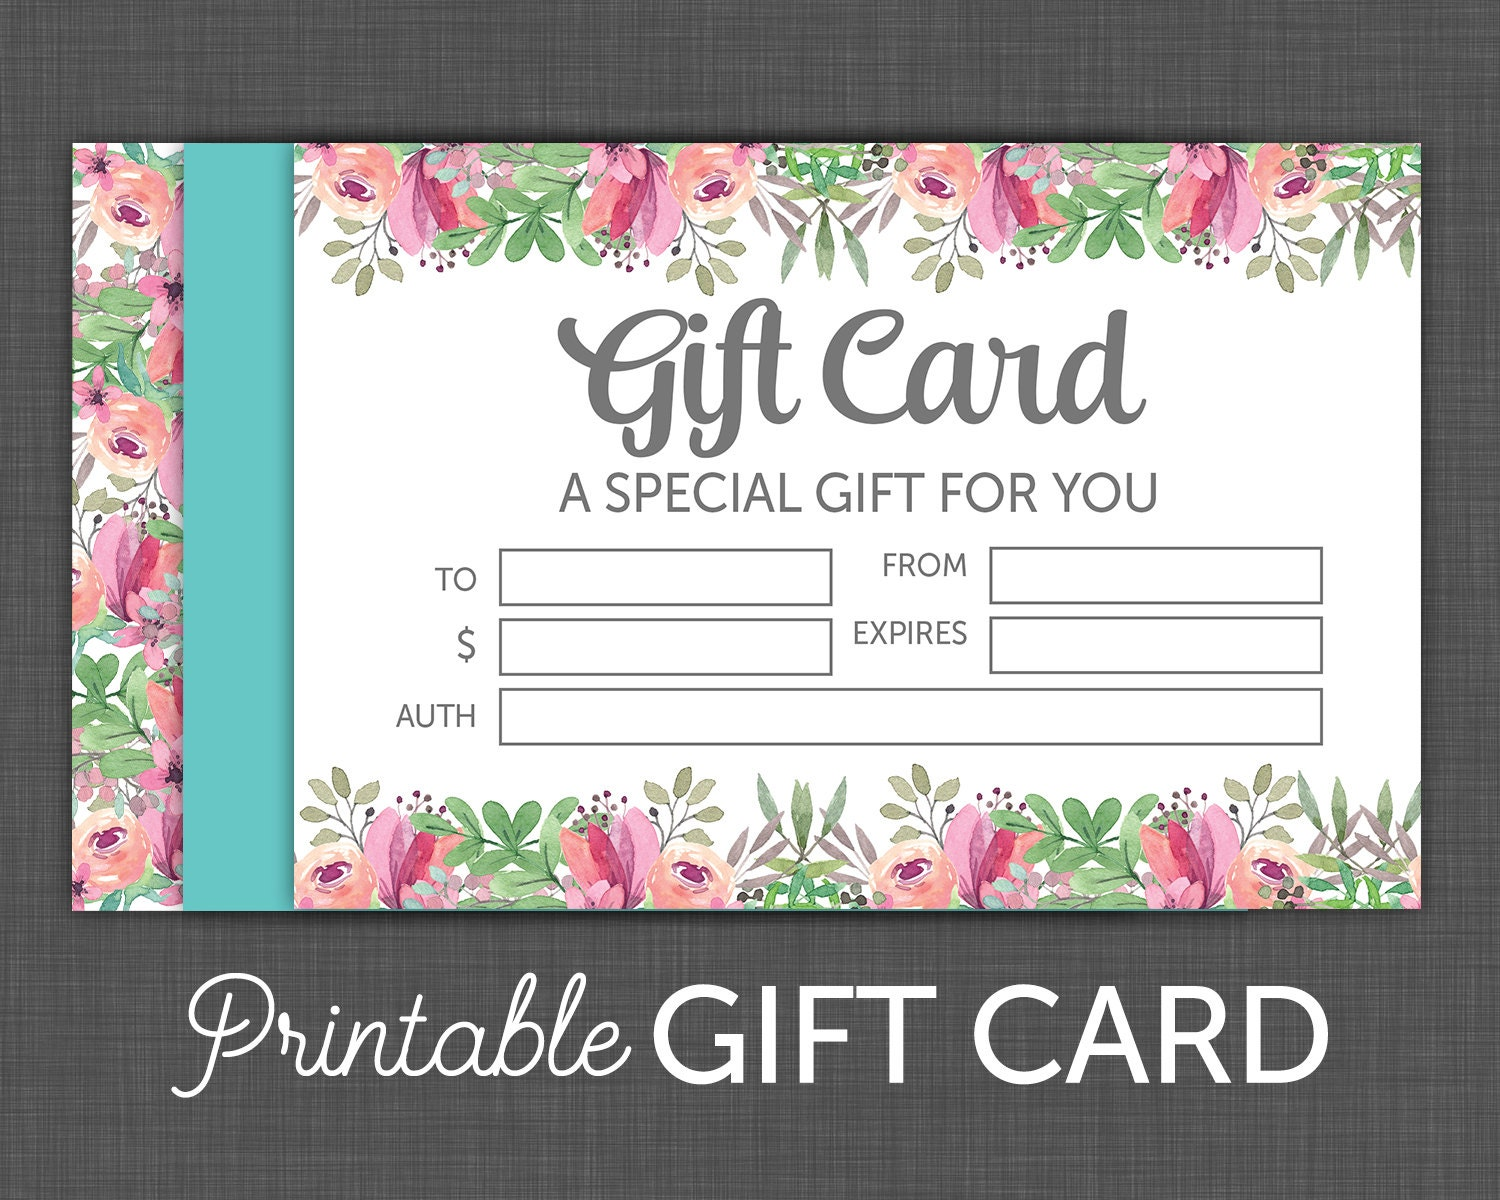 Gift Certificate Floral Gift Card Printable gift Card